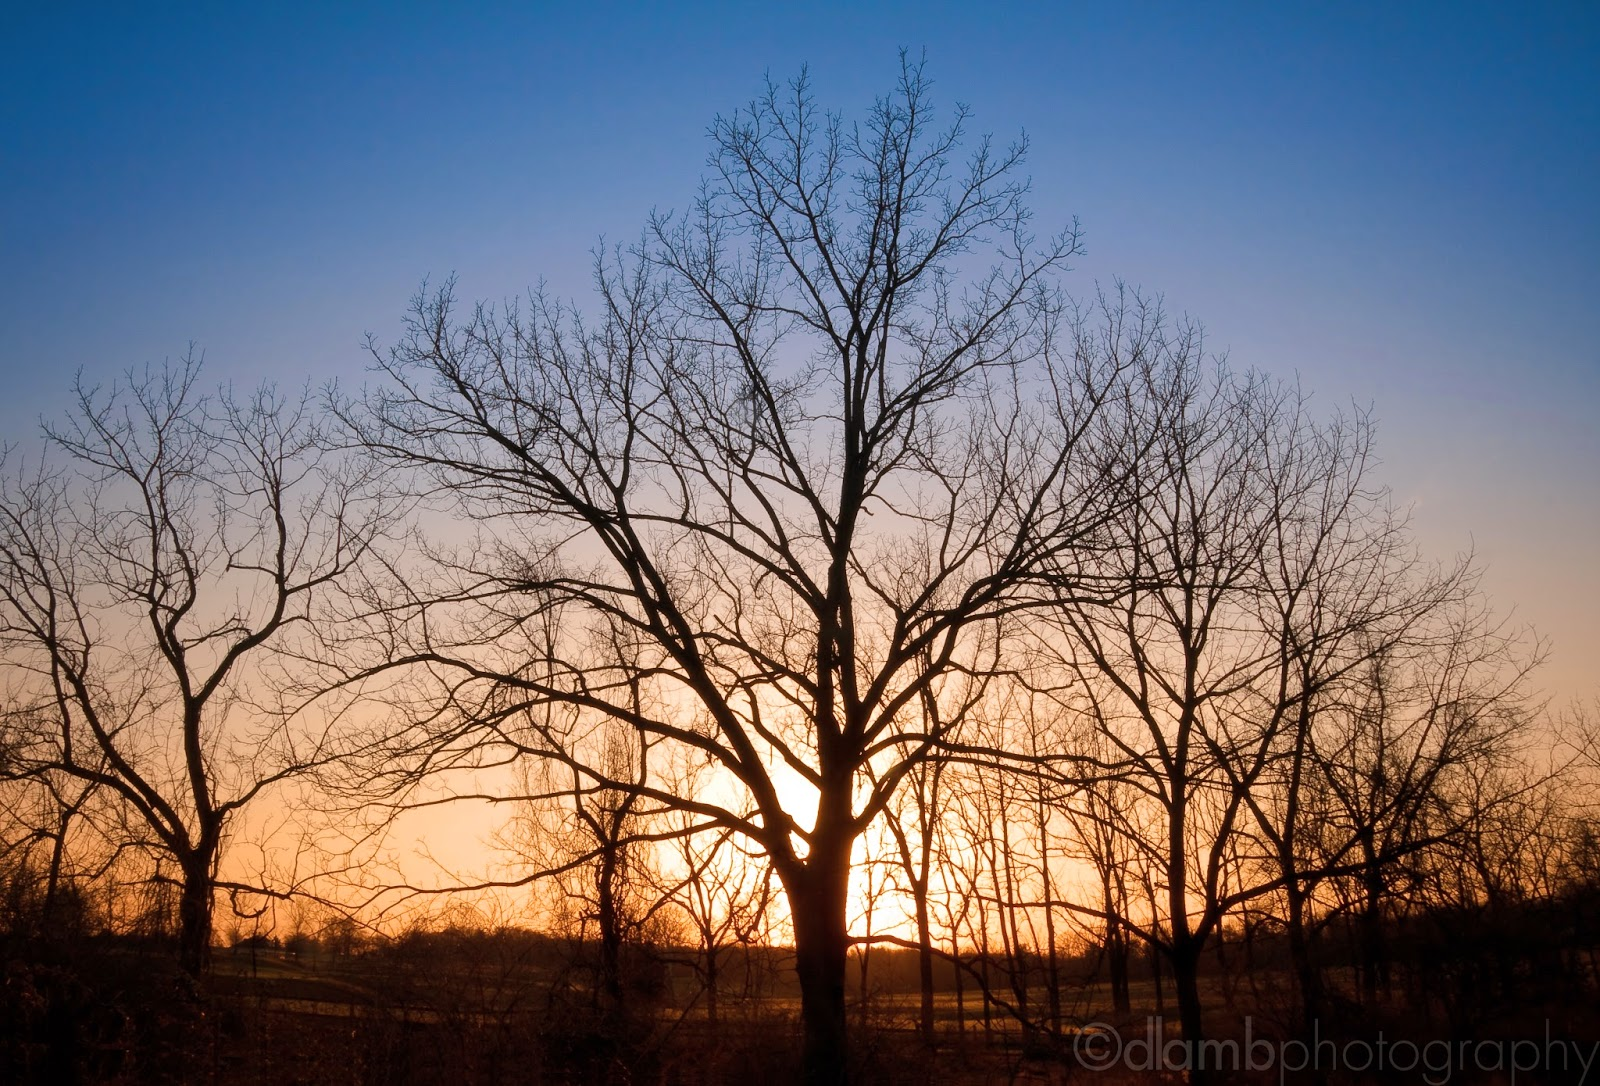 http://www.redbubble.com/people/dlamb/works/8609859-winter-trees-at-dusk